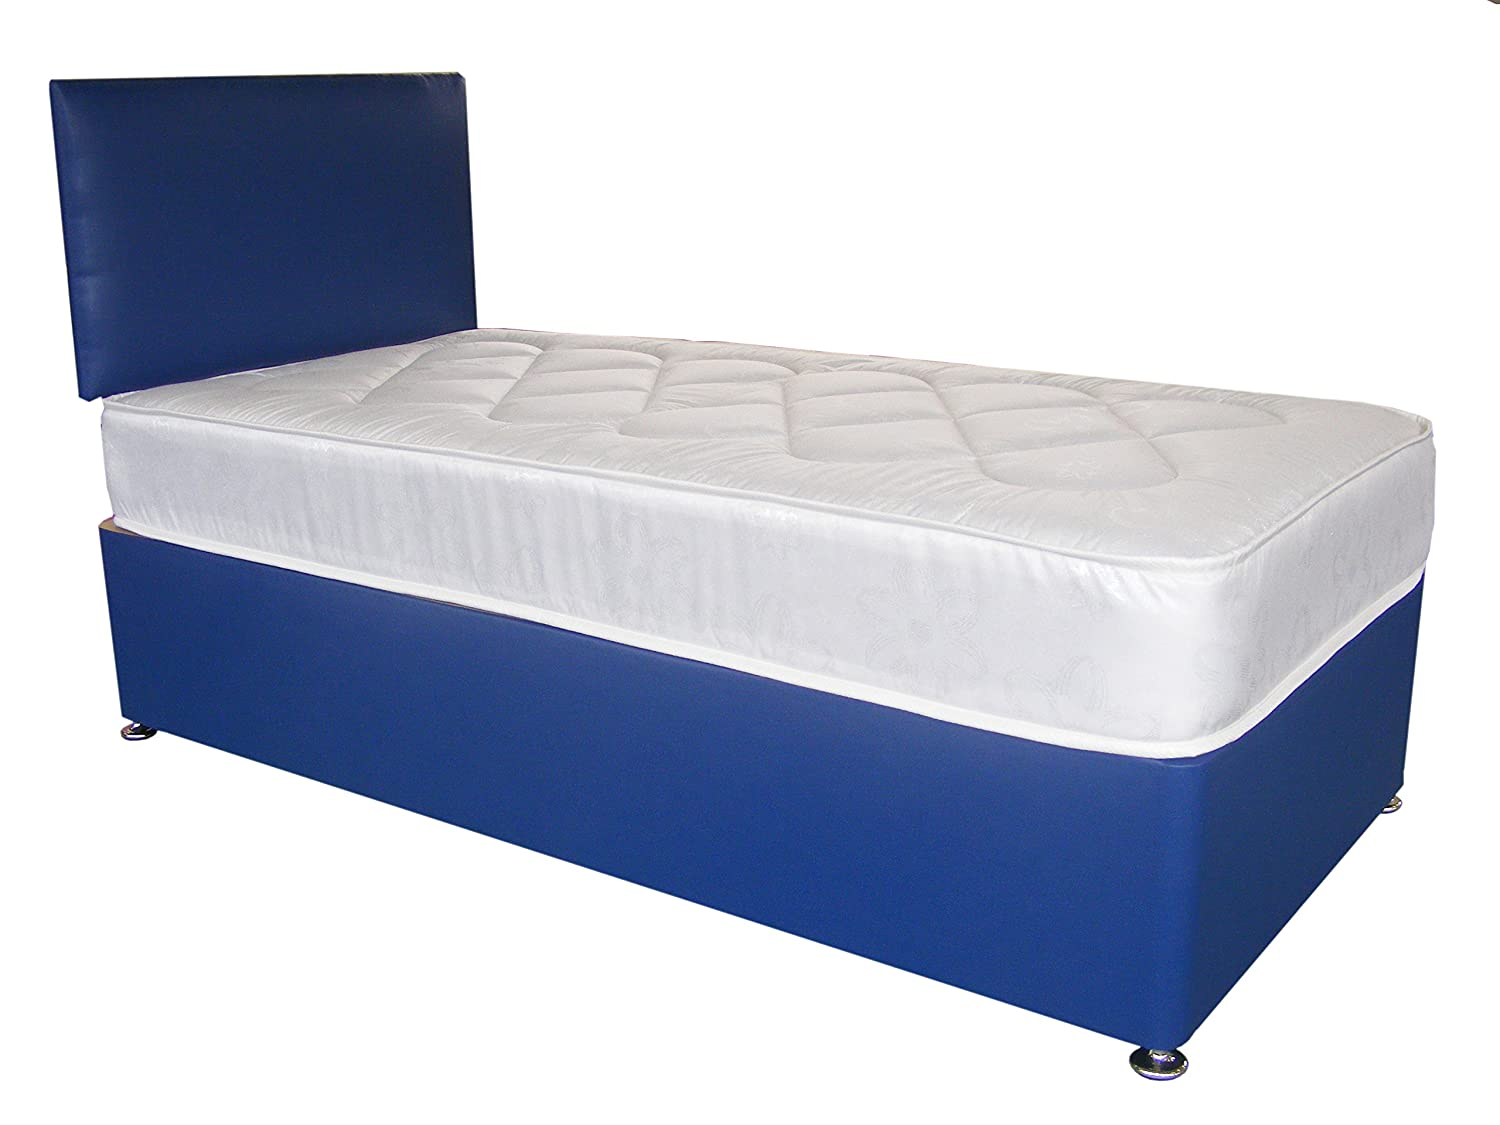 Blue Faux Leather Divan Bed Including Deep Quilt Mattress and Headboard kids (Available in 2'6 Small Single - 3'0 Single - 3'6 Large Single - 4'0 Small Double - 4'6 Double) (2'6x6'3 Small Single) In2Bed LTD